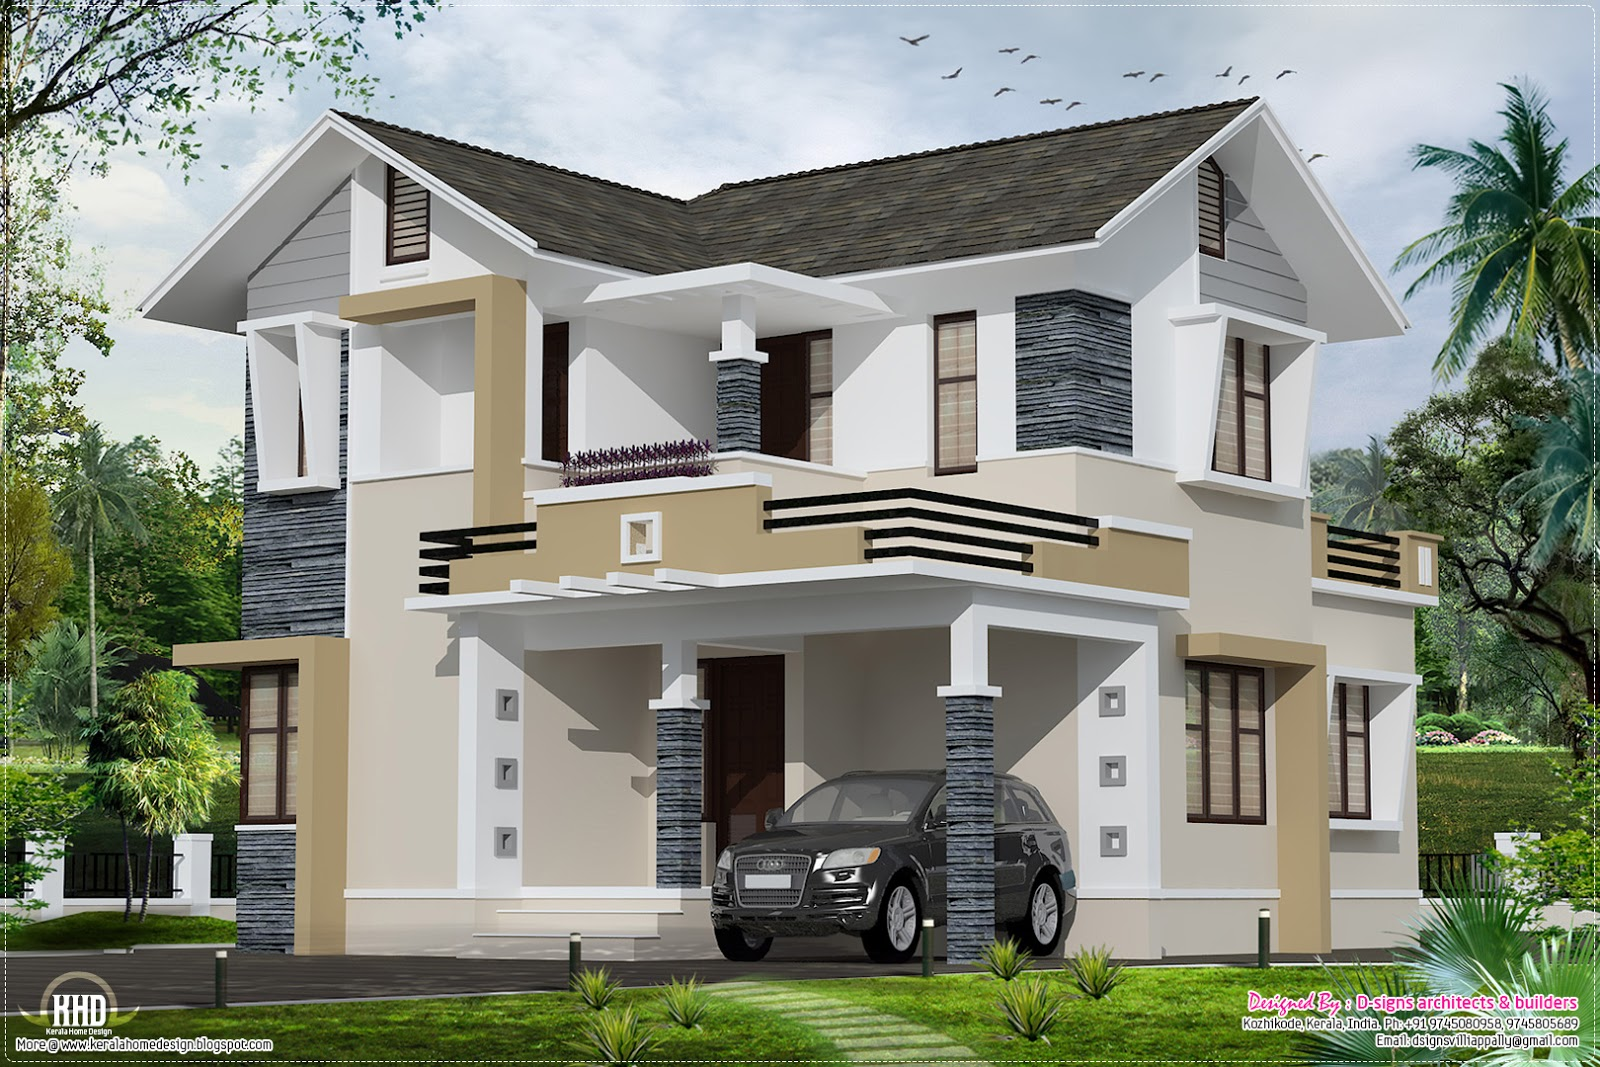 Stylish small home design kerala home design and floor plans for Small house desings